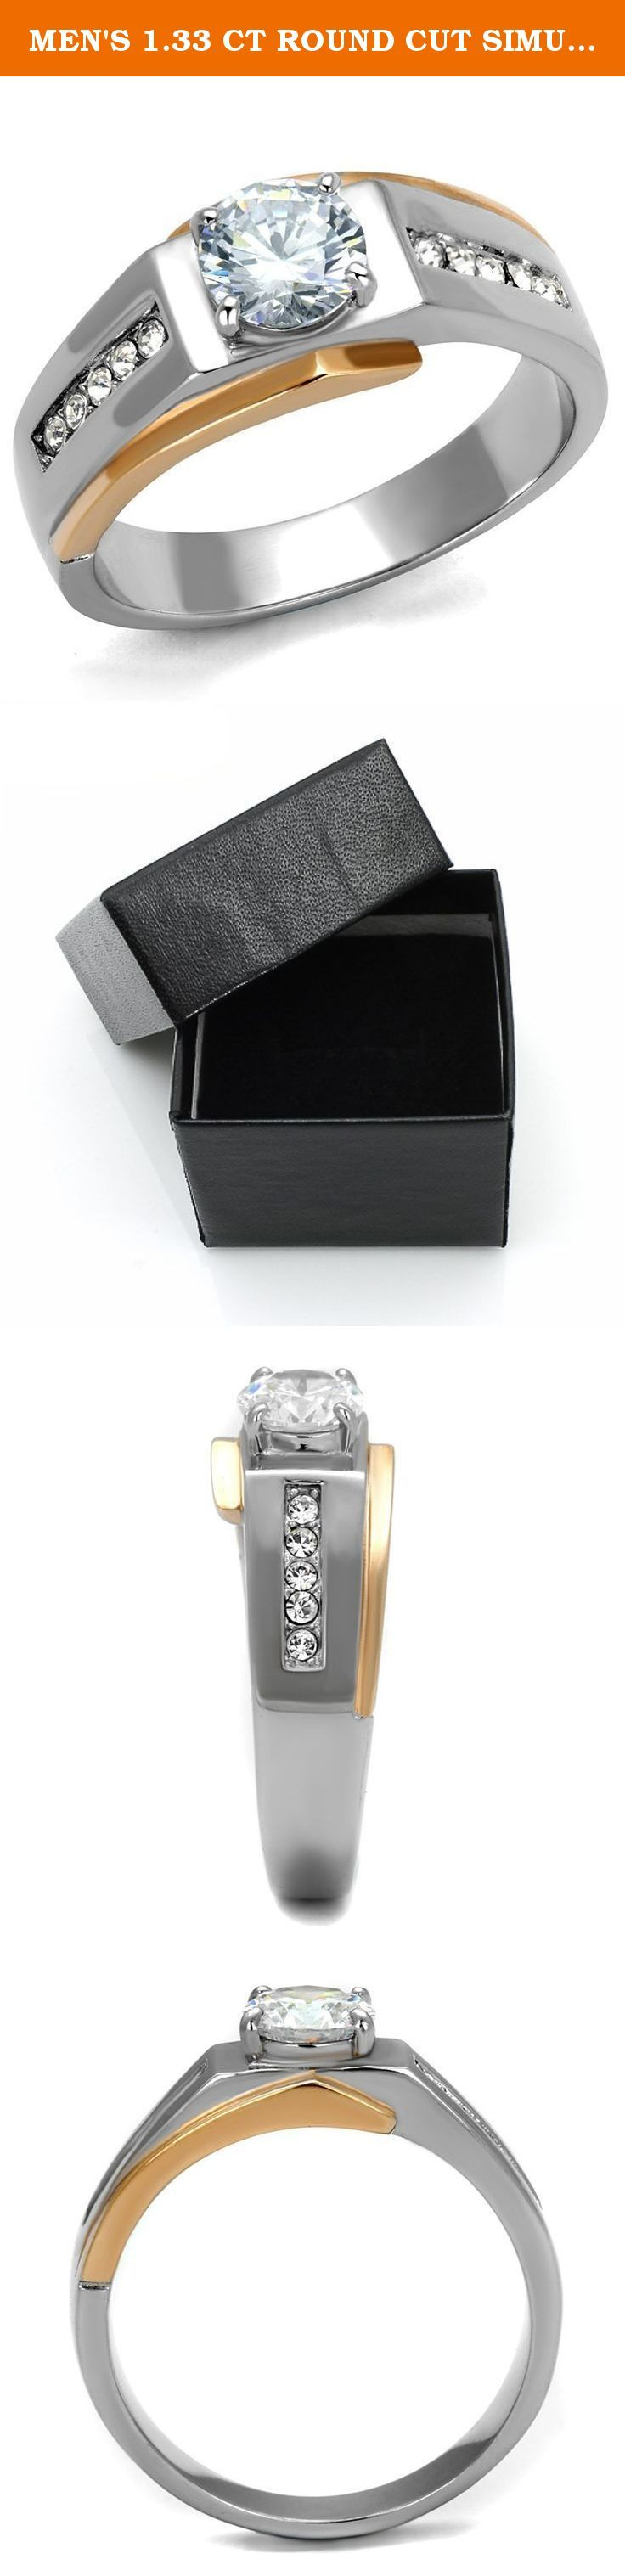 MEN'S 1.33 CT ROUND CUT SIMULATED DIAMOND TWO TONED STAINLESS STEEL RING Size 11. Men's 1.33 Ct Round Cut Simulated Diamond Two Toned Stainless Steel Ring Size 8-13 Men's AAA Grade Cubic Zirconia ring. Features a 1.03 Ct (6mm) clear round brilliant cut center stone in a prong setting, accented by 10 (2mm) clear round brilliant cut stones in a channel setting. Total carat weight is 1.33 diamond equivalent. Top quality stones display enriched clarity just like real diamonds! Surgical…